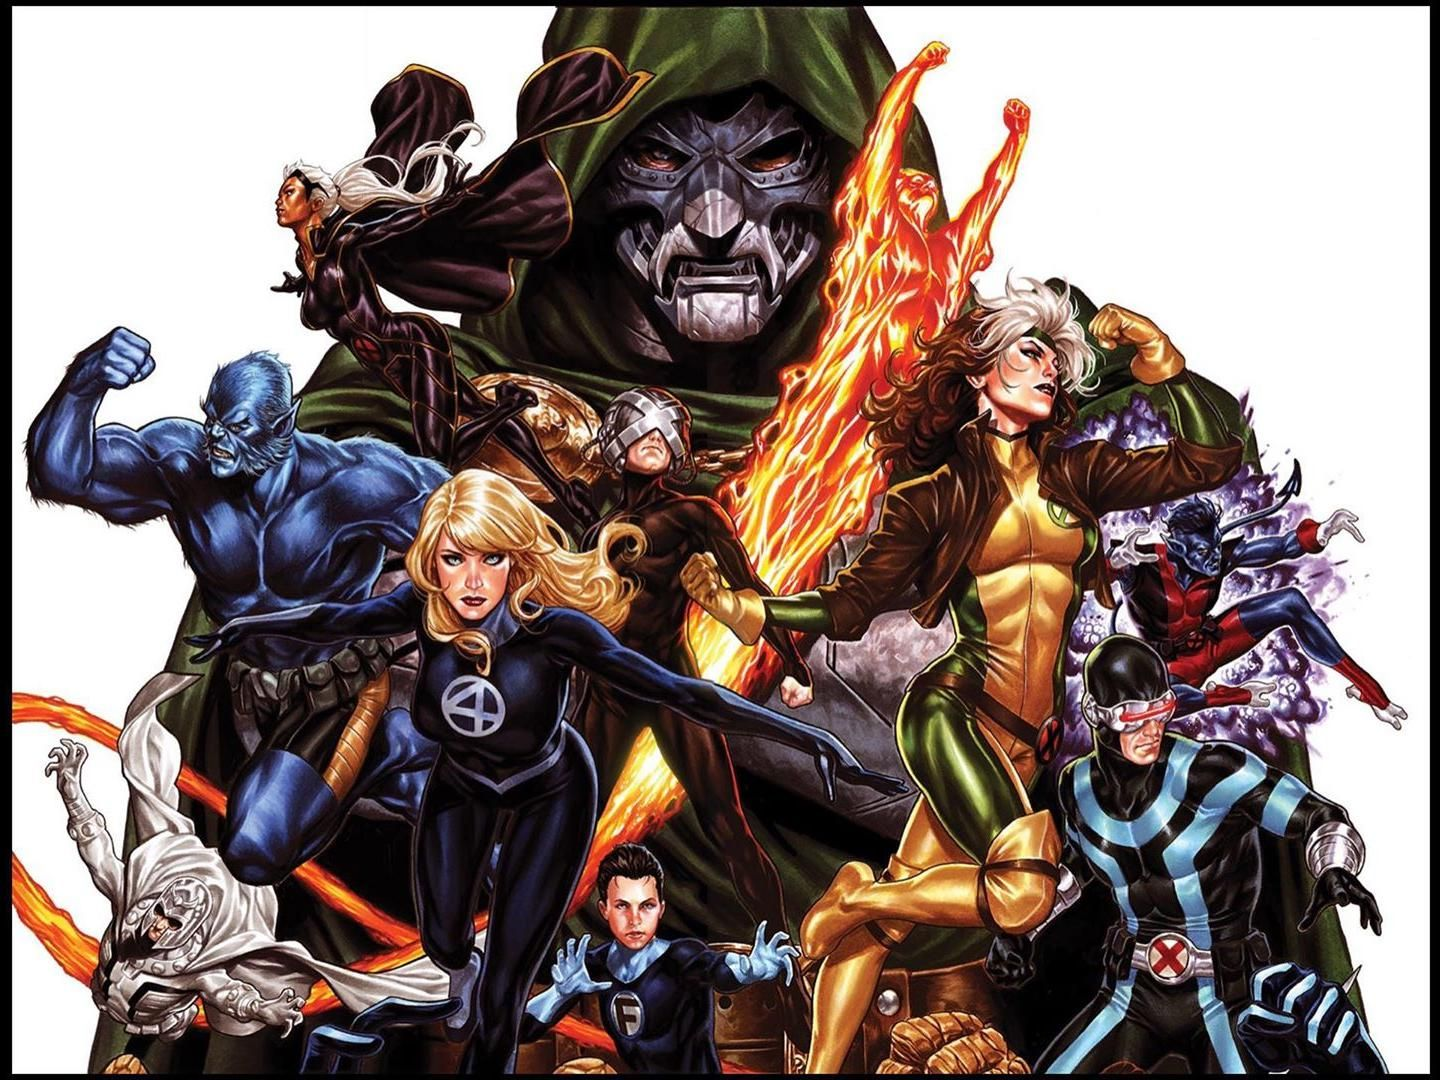 X Men Fantastic Four 1 Amp 2 Connecting Variant Covers By Mark Brooks In 2020 Fantastic Four Marvel X Spiderman Vs Superman